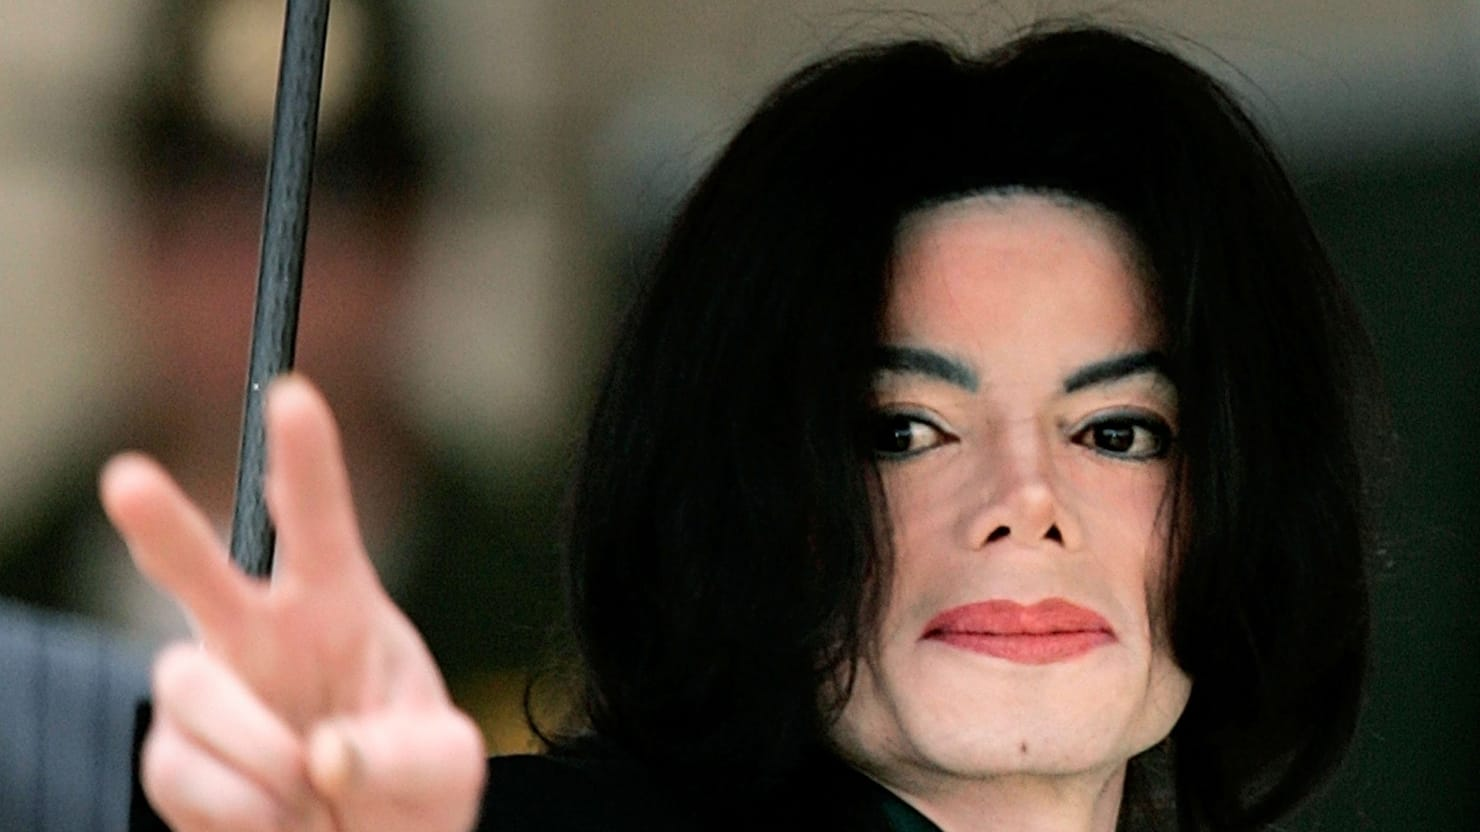 The Story Behind the Latest Michael Jackson Bombshell